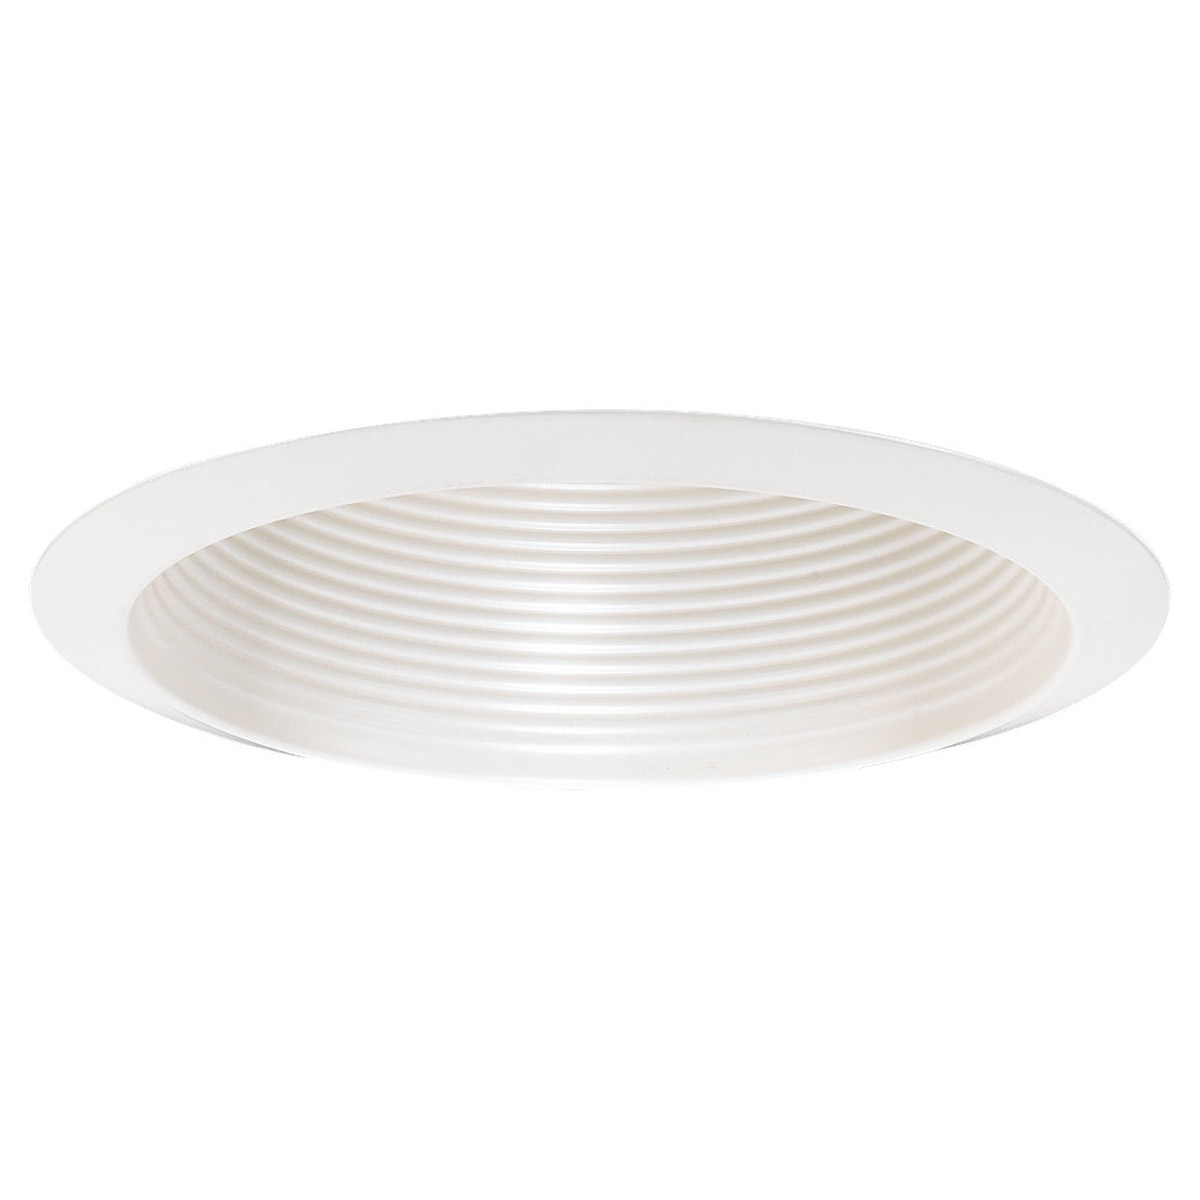 Sea Gull Lighting Signature Recessed Trim Only in White 11154AT-14 photo